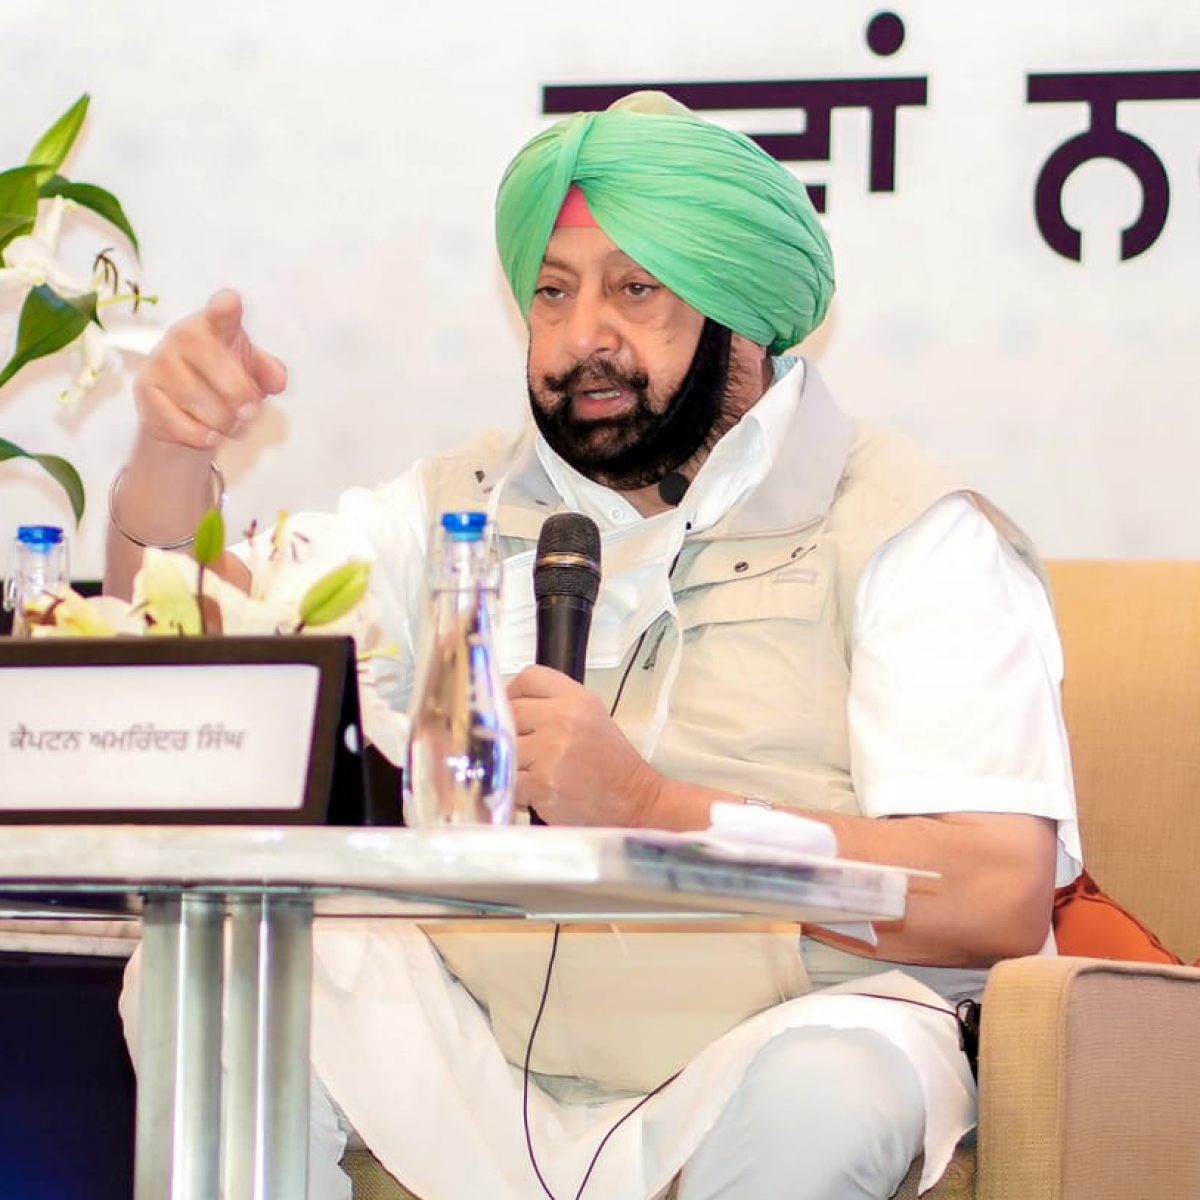 Punjab CM urges Centre to scrap farm laws, bring in new ones after fresh talks with farmers